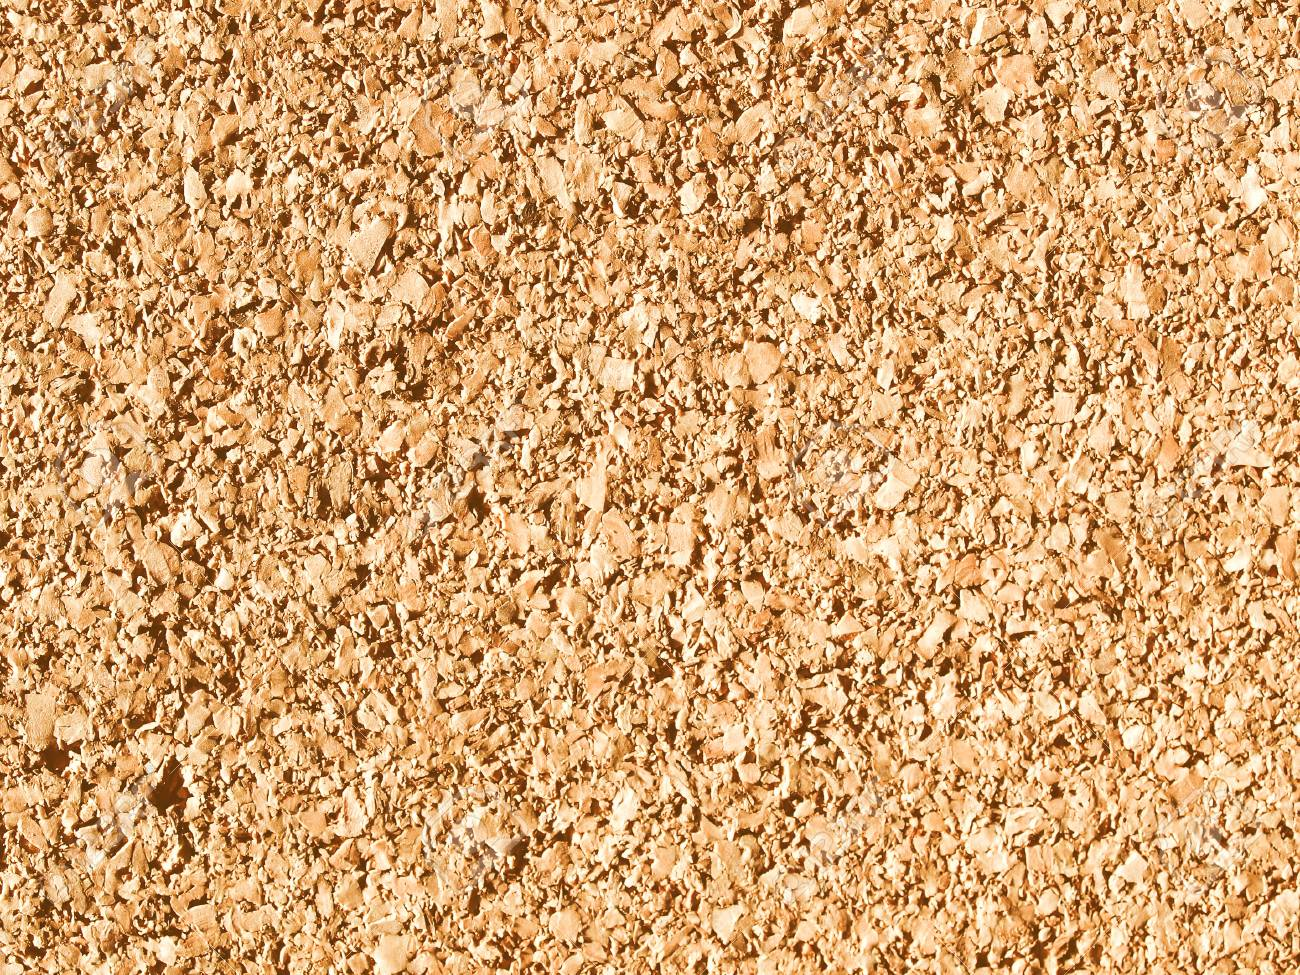 Vintage looking Cork material useful as a texture background Stock Photo -  48672867